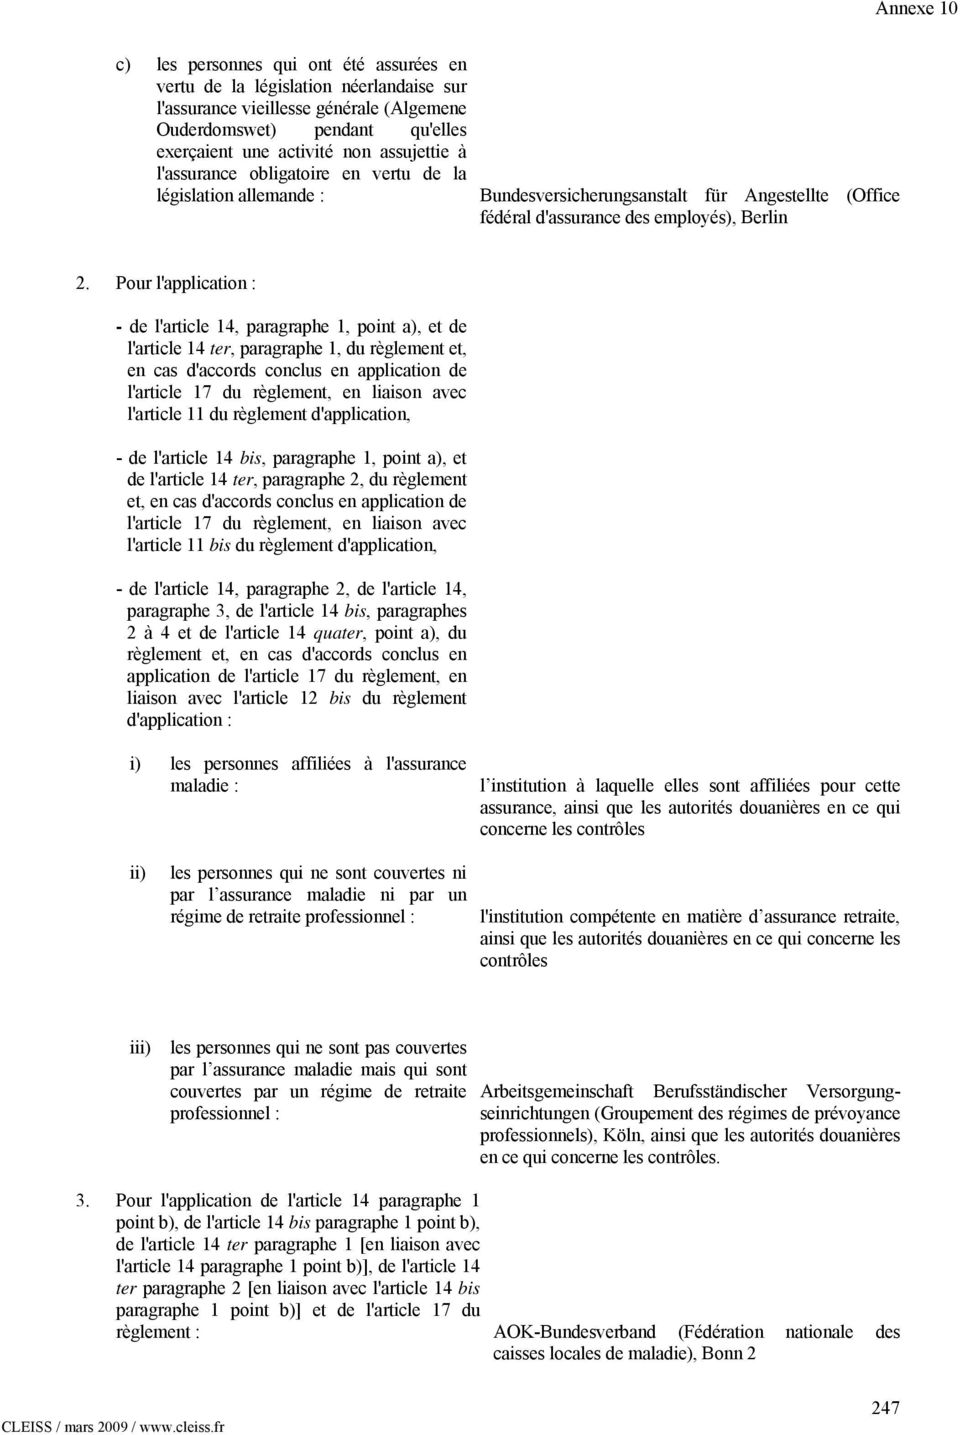 Pour l'application : - de l'article 14, paragraphe 1, point a), et de l'article 14 ter, paragraphe 1, du règlement et, en cas d'accords conclus en application de l'article 17 du règlement, en liaison